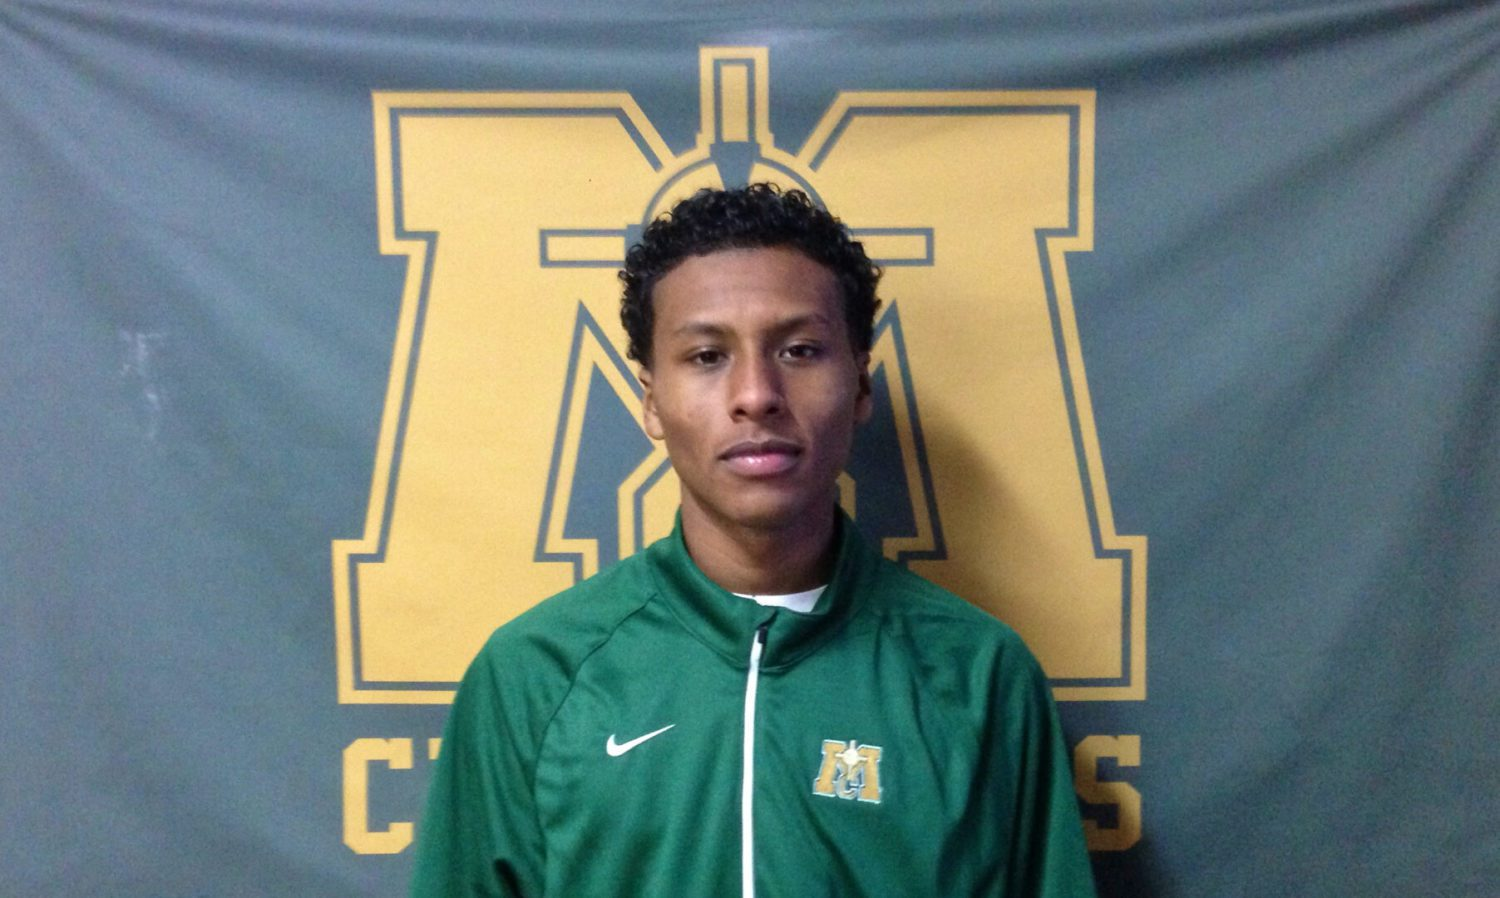 Christian Martinez, stepson of Muskegon coach Keith Guy, is an emerging offensive force for Muskegon Catholic